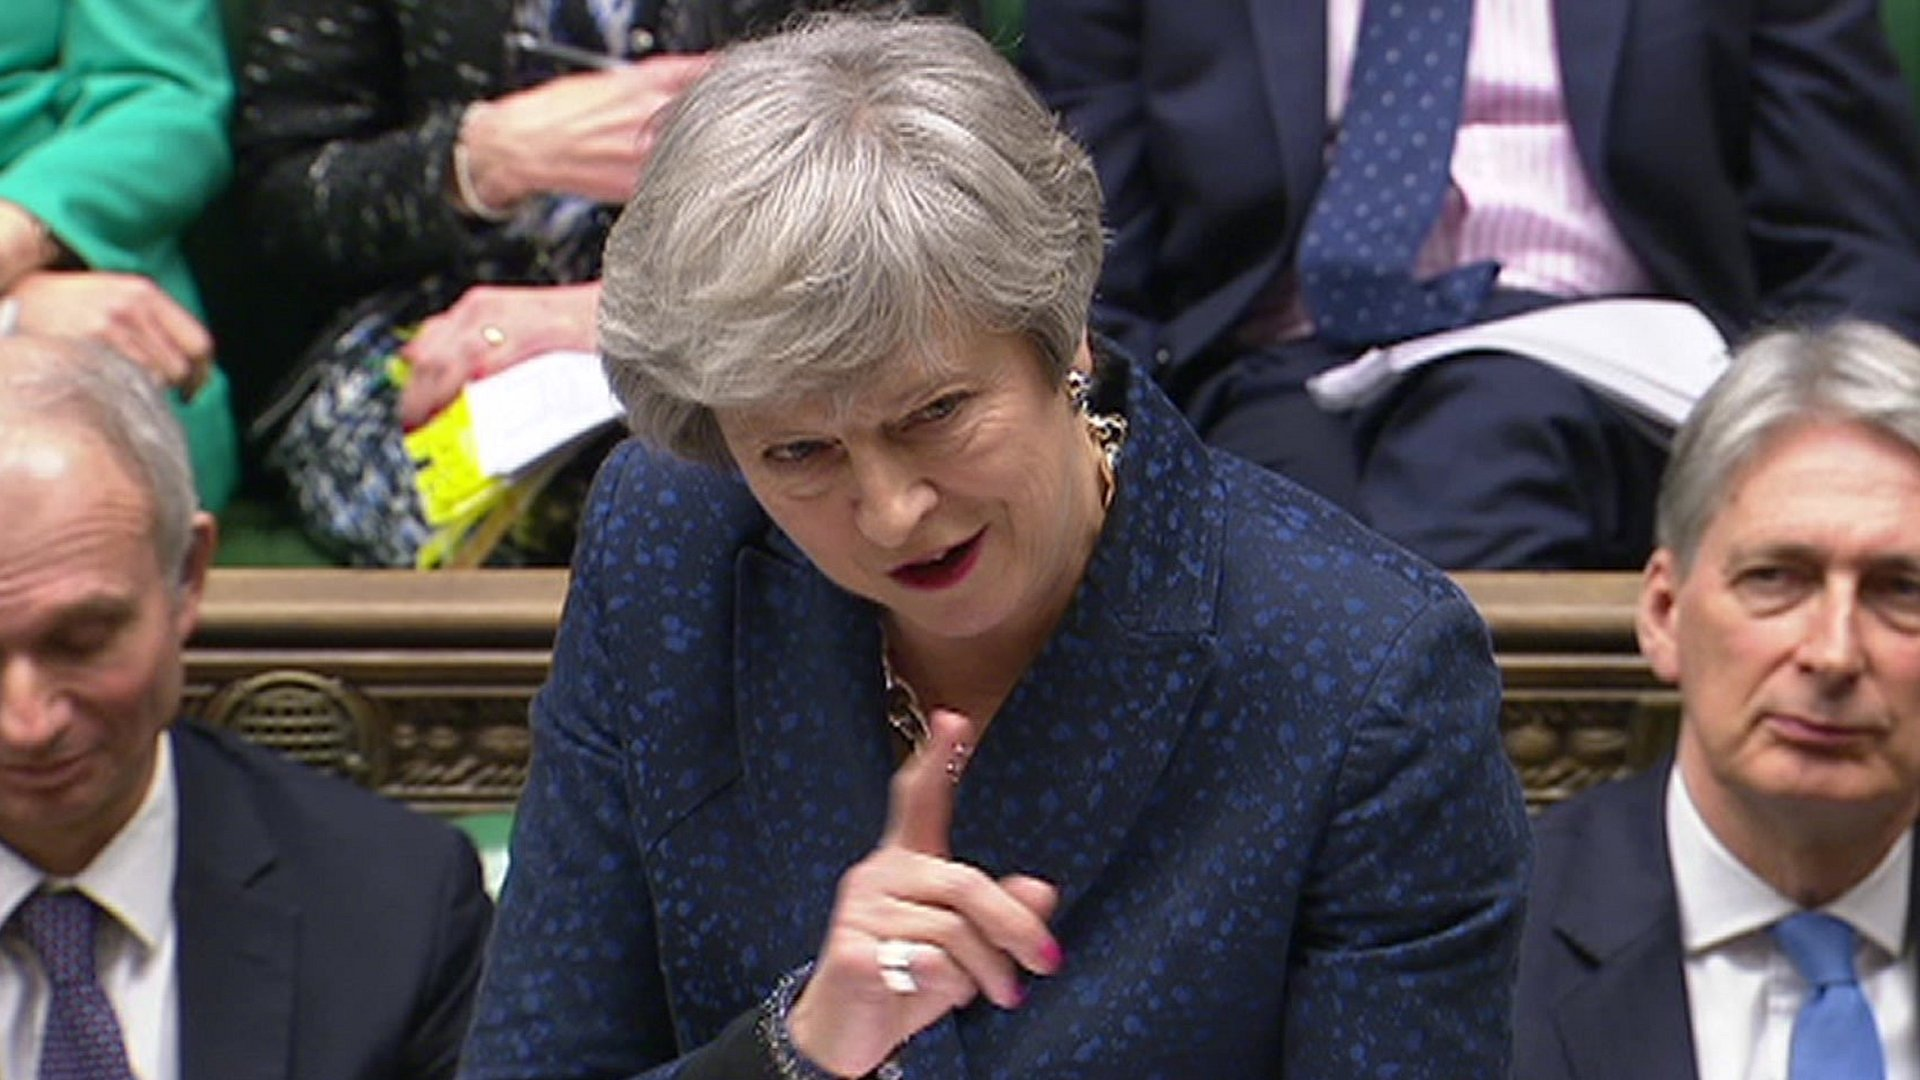 Delaying Brexit won't solve anything, Theresa May tells MPs